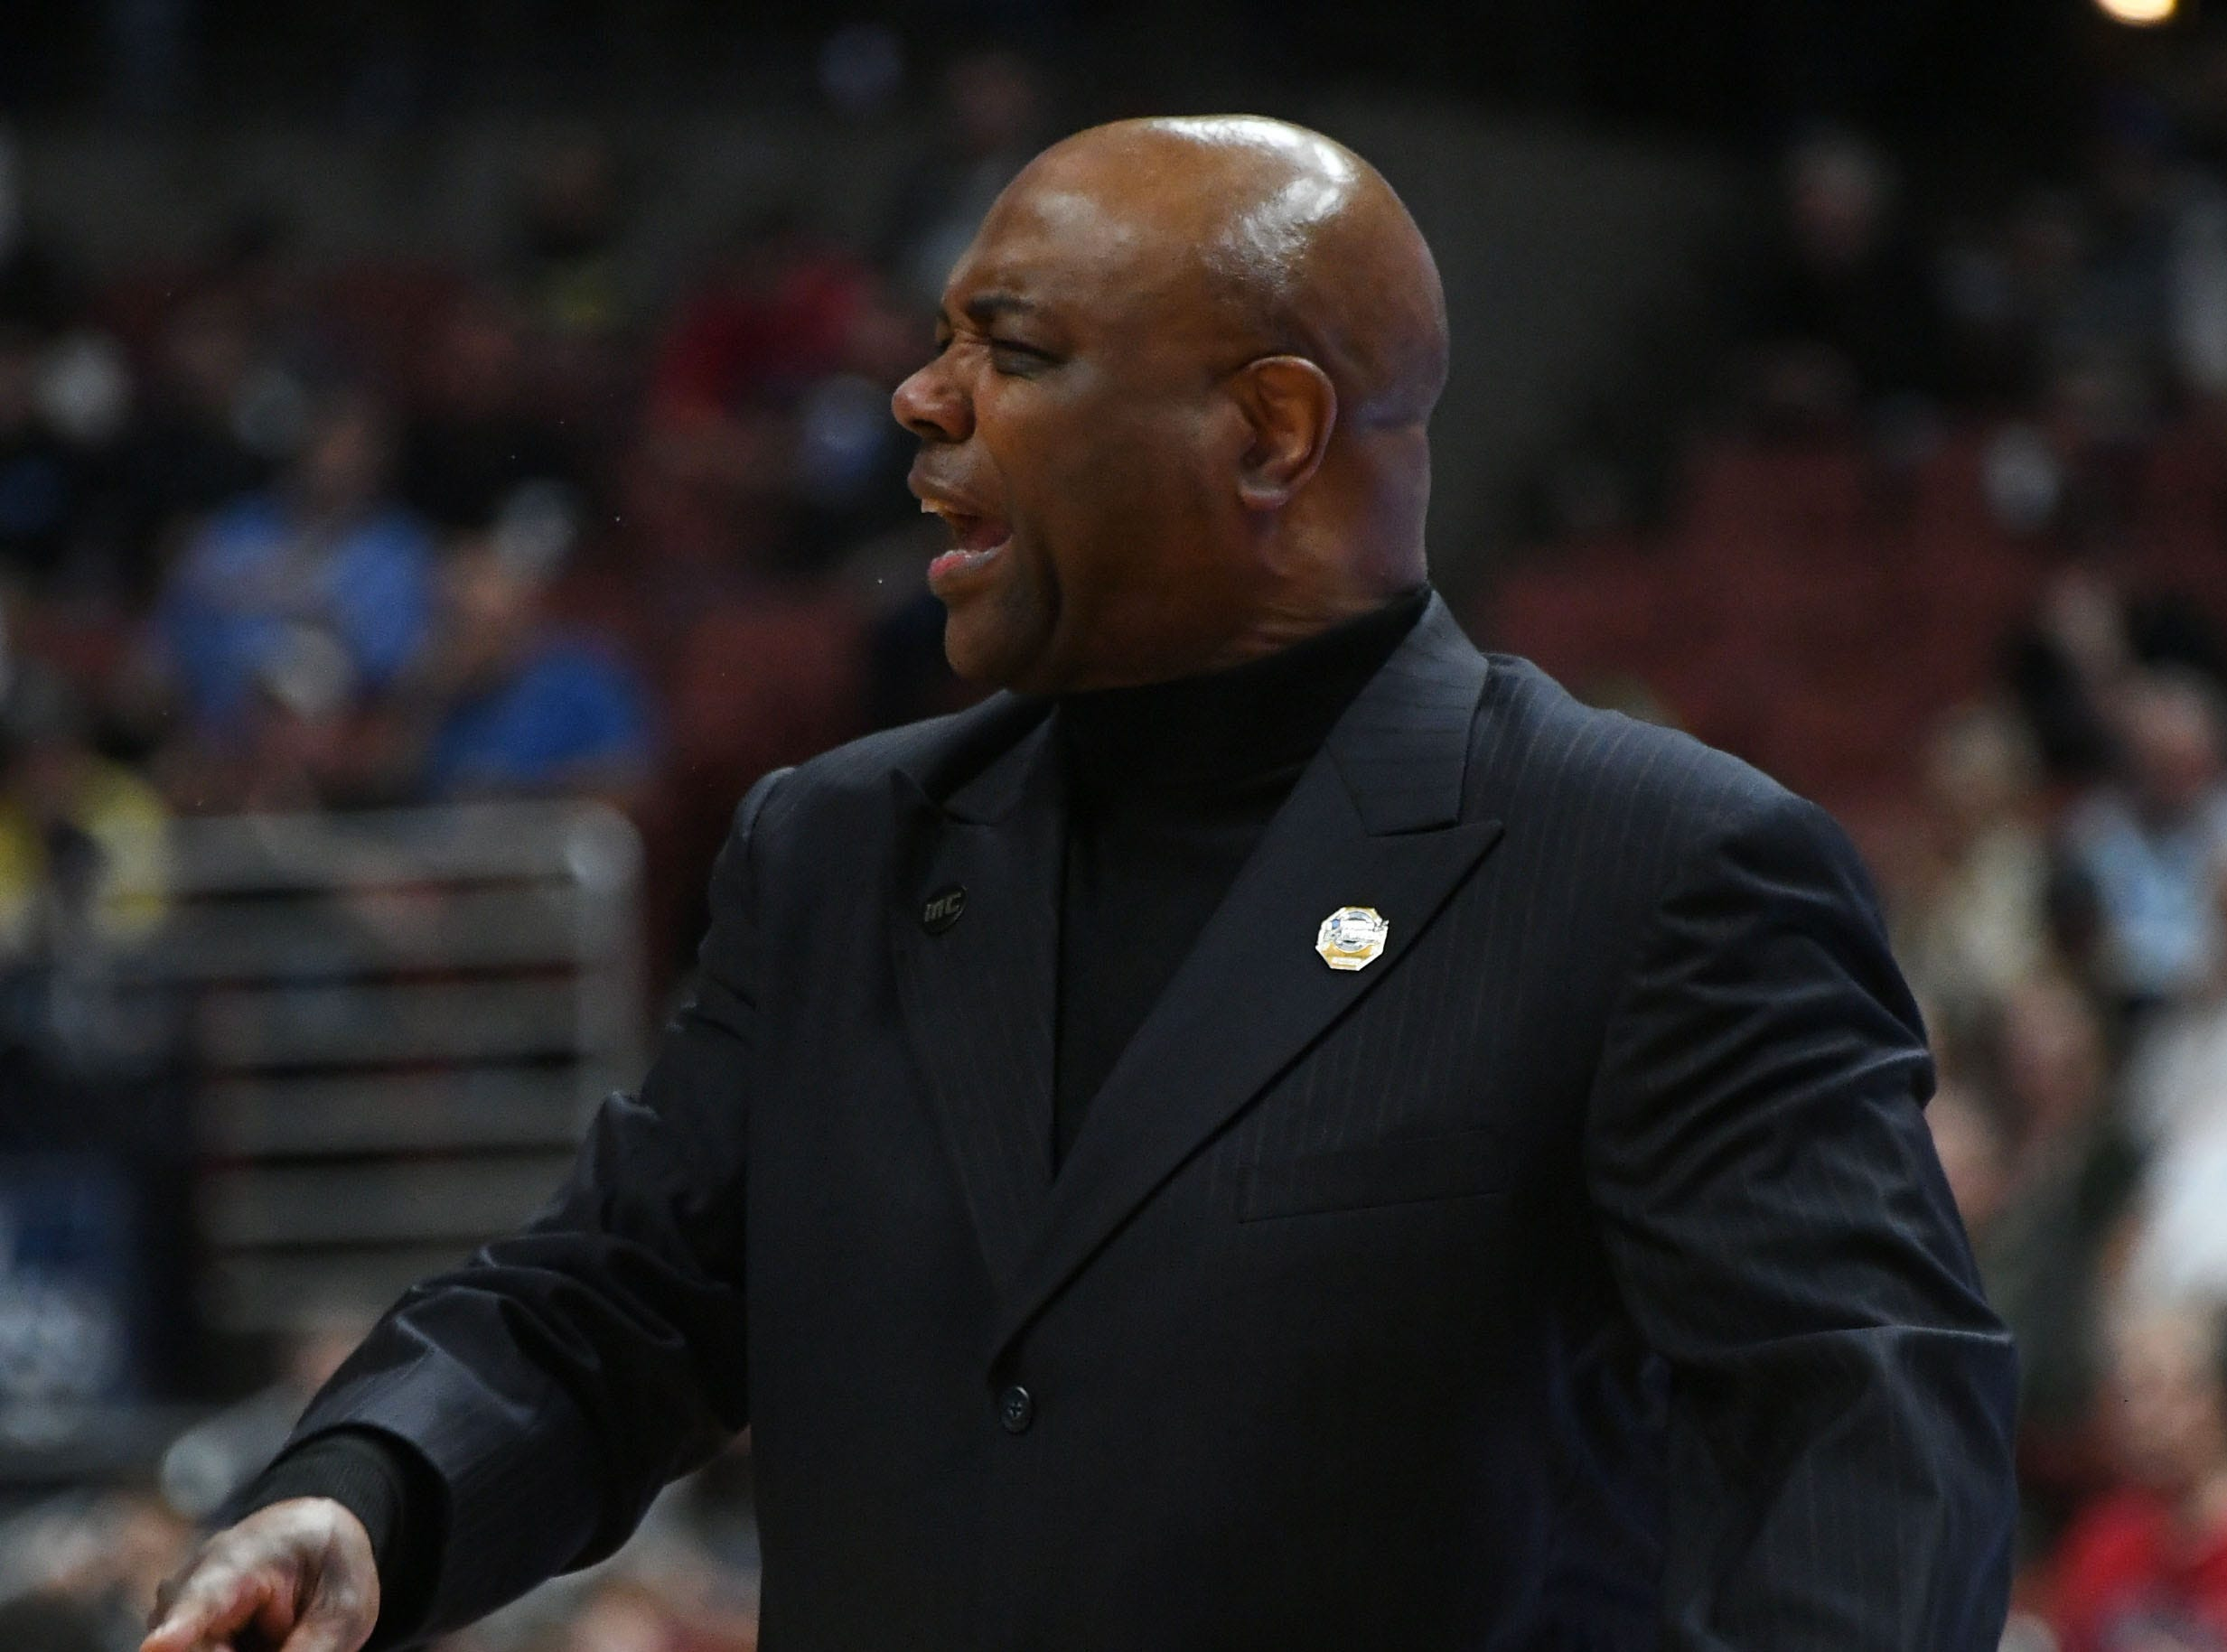 March 28, 2019; Anaheim, CA, USA; Florida State Seminoles head coach Leonard Hamilton watches game action against the Gonzaga Bulldogs during the first half in the semifinals of the west regional of the 2019 NCAA Tournament at Honda Center. Mandatory Credit: Richard Mackson-USA TODAY Sports